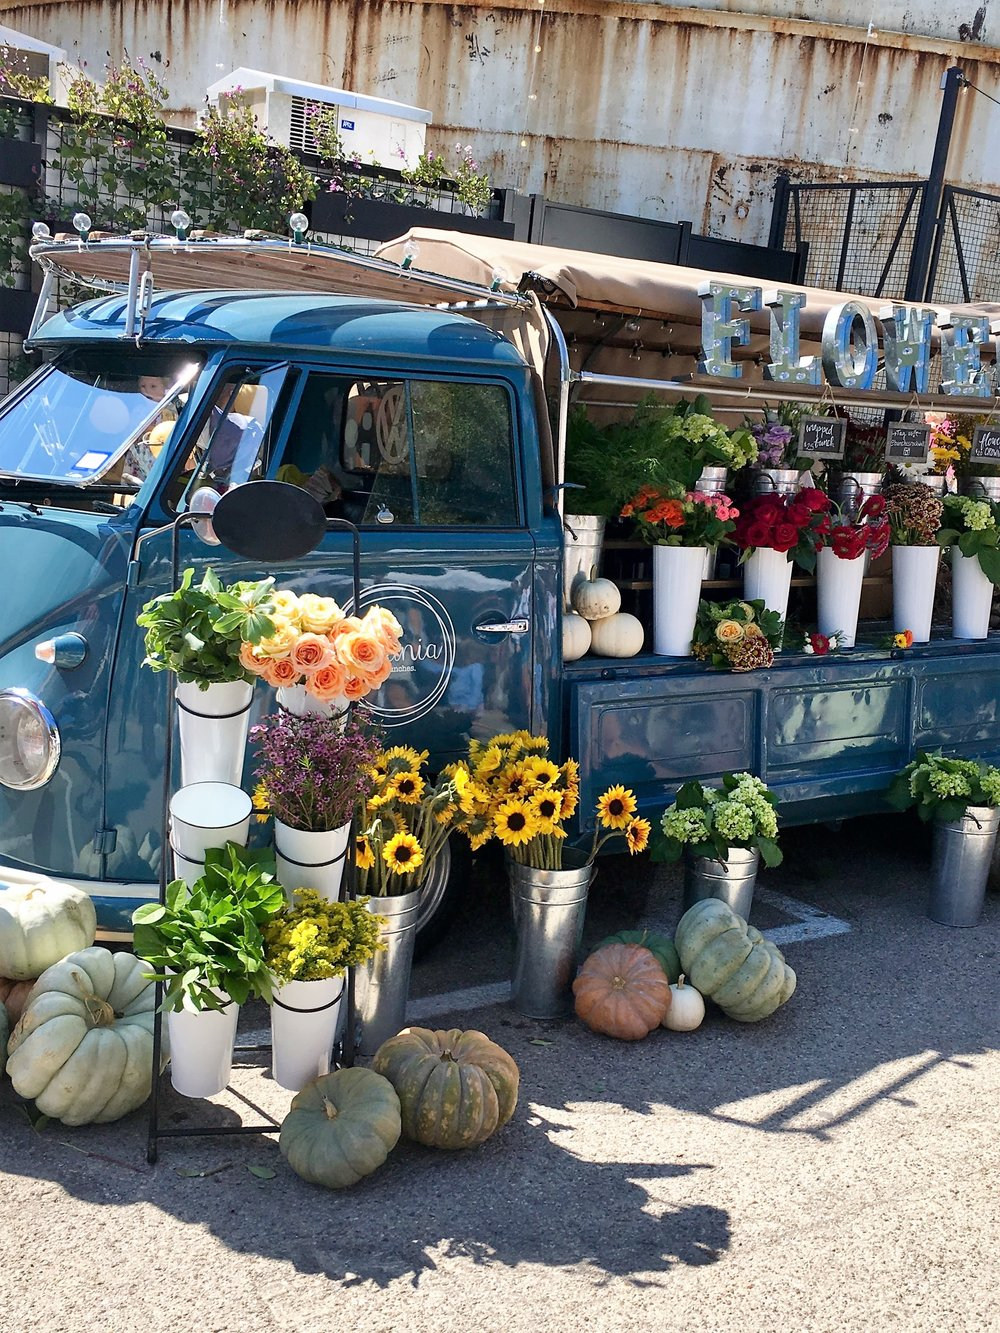 Loved this cute flower truck which was part of the vendor fair